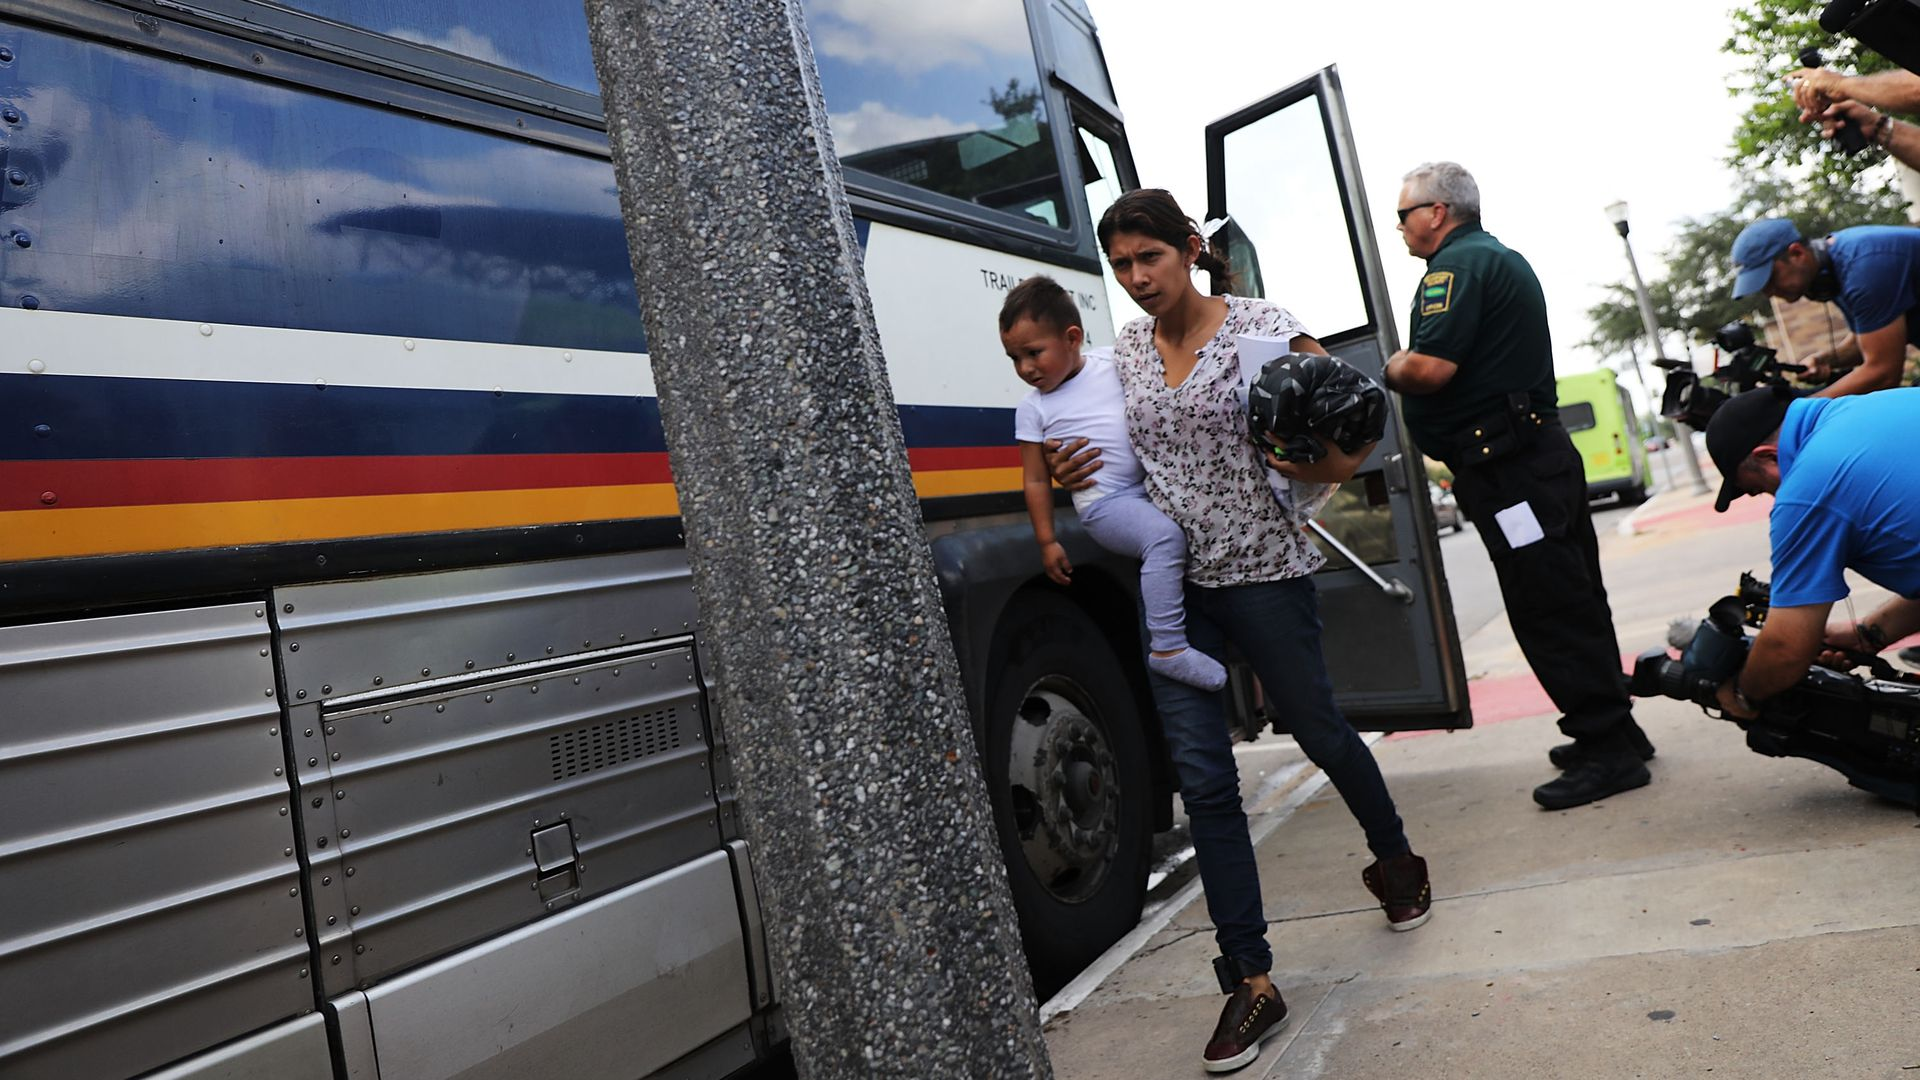 A migrant woman and her child get off a bus